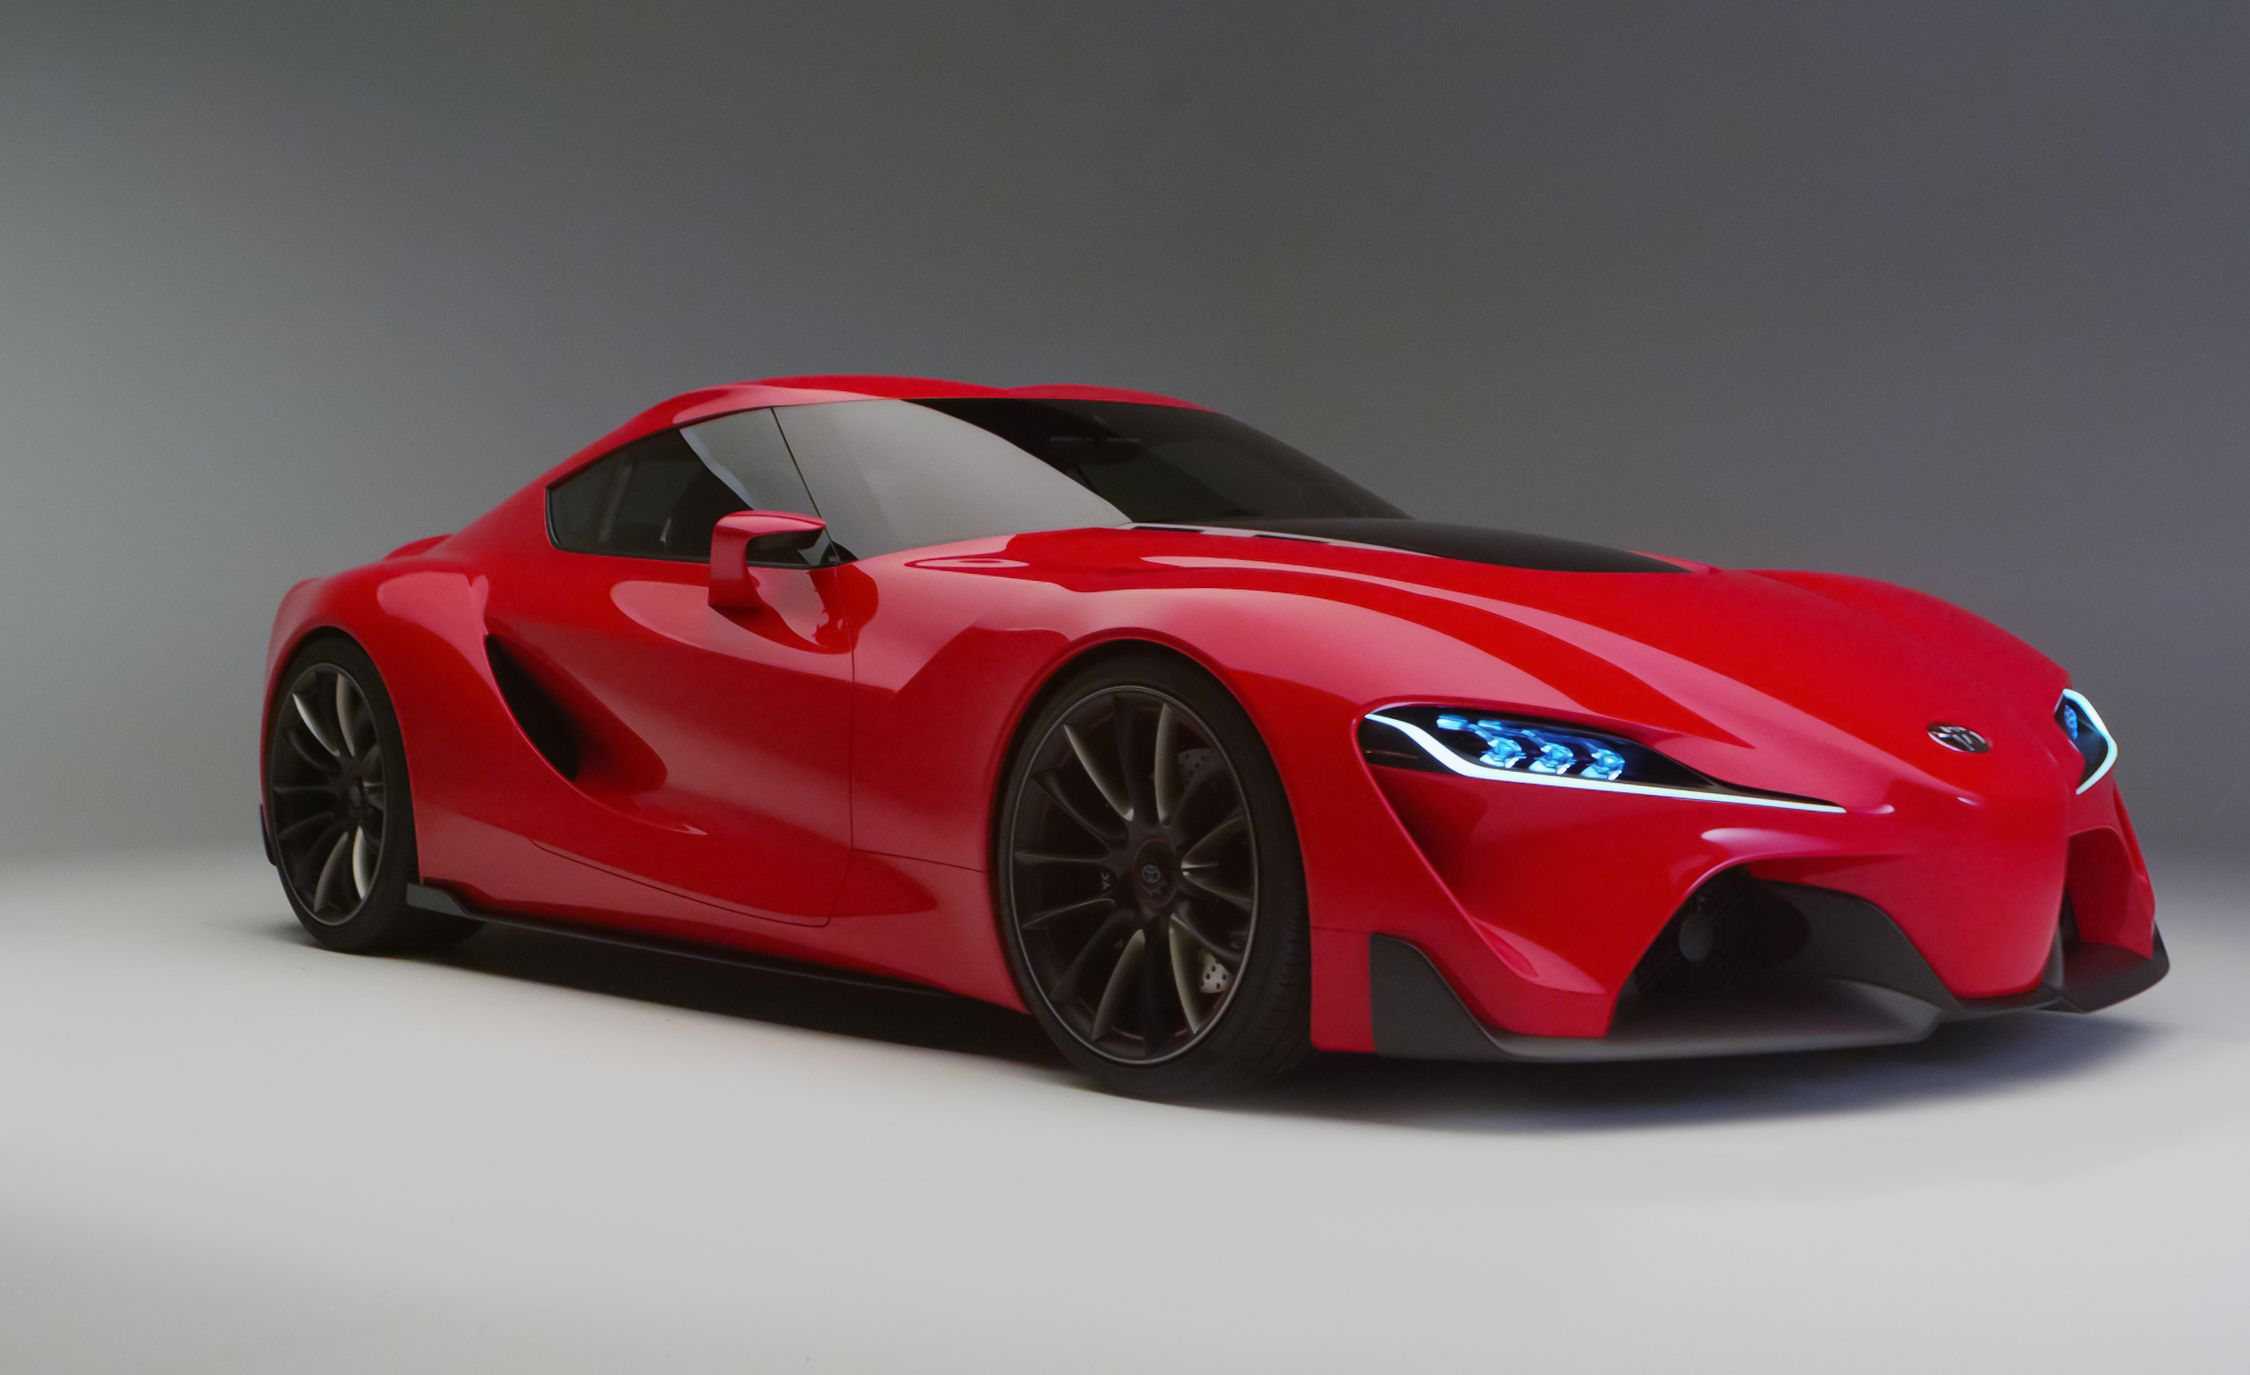 Toyota Ft1 Concept Wallpapers Hd Wallpaperxy Com Japanese Sports Cars New Toyota Supra Sports Car 2014 toyota ft 1 vision gt 2